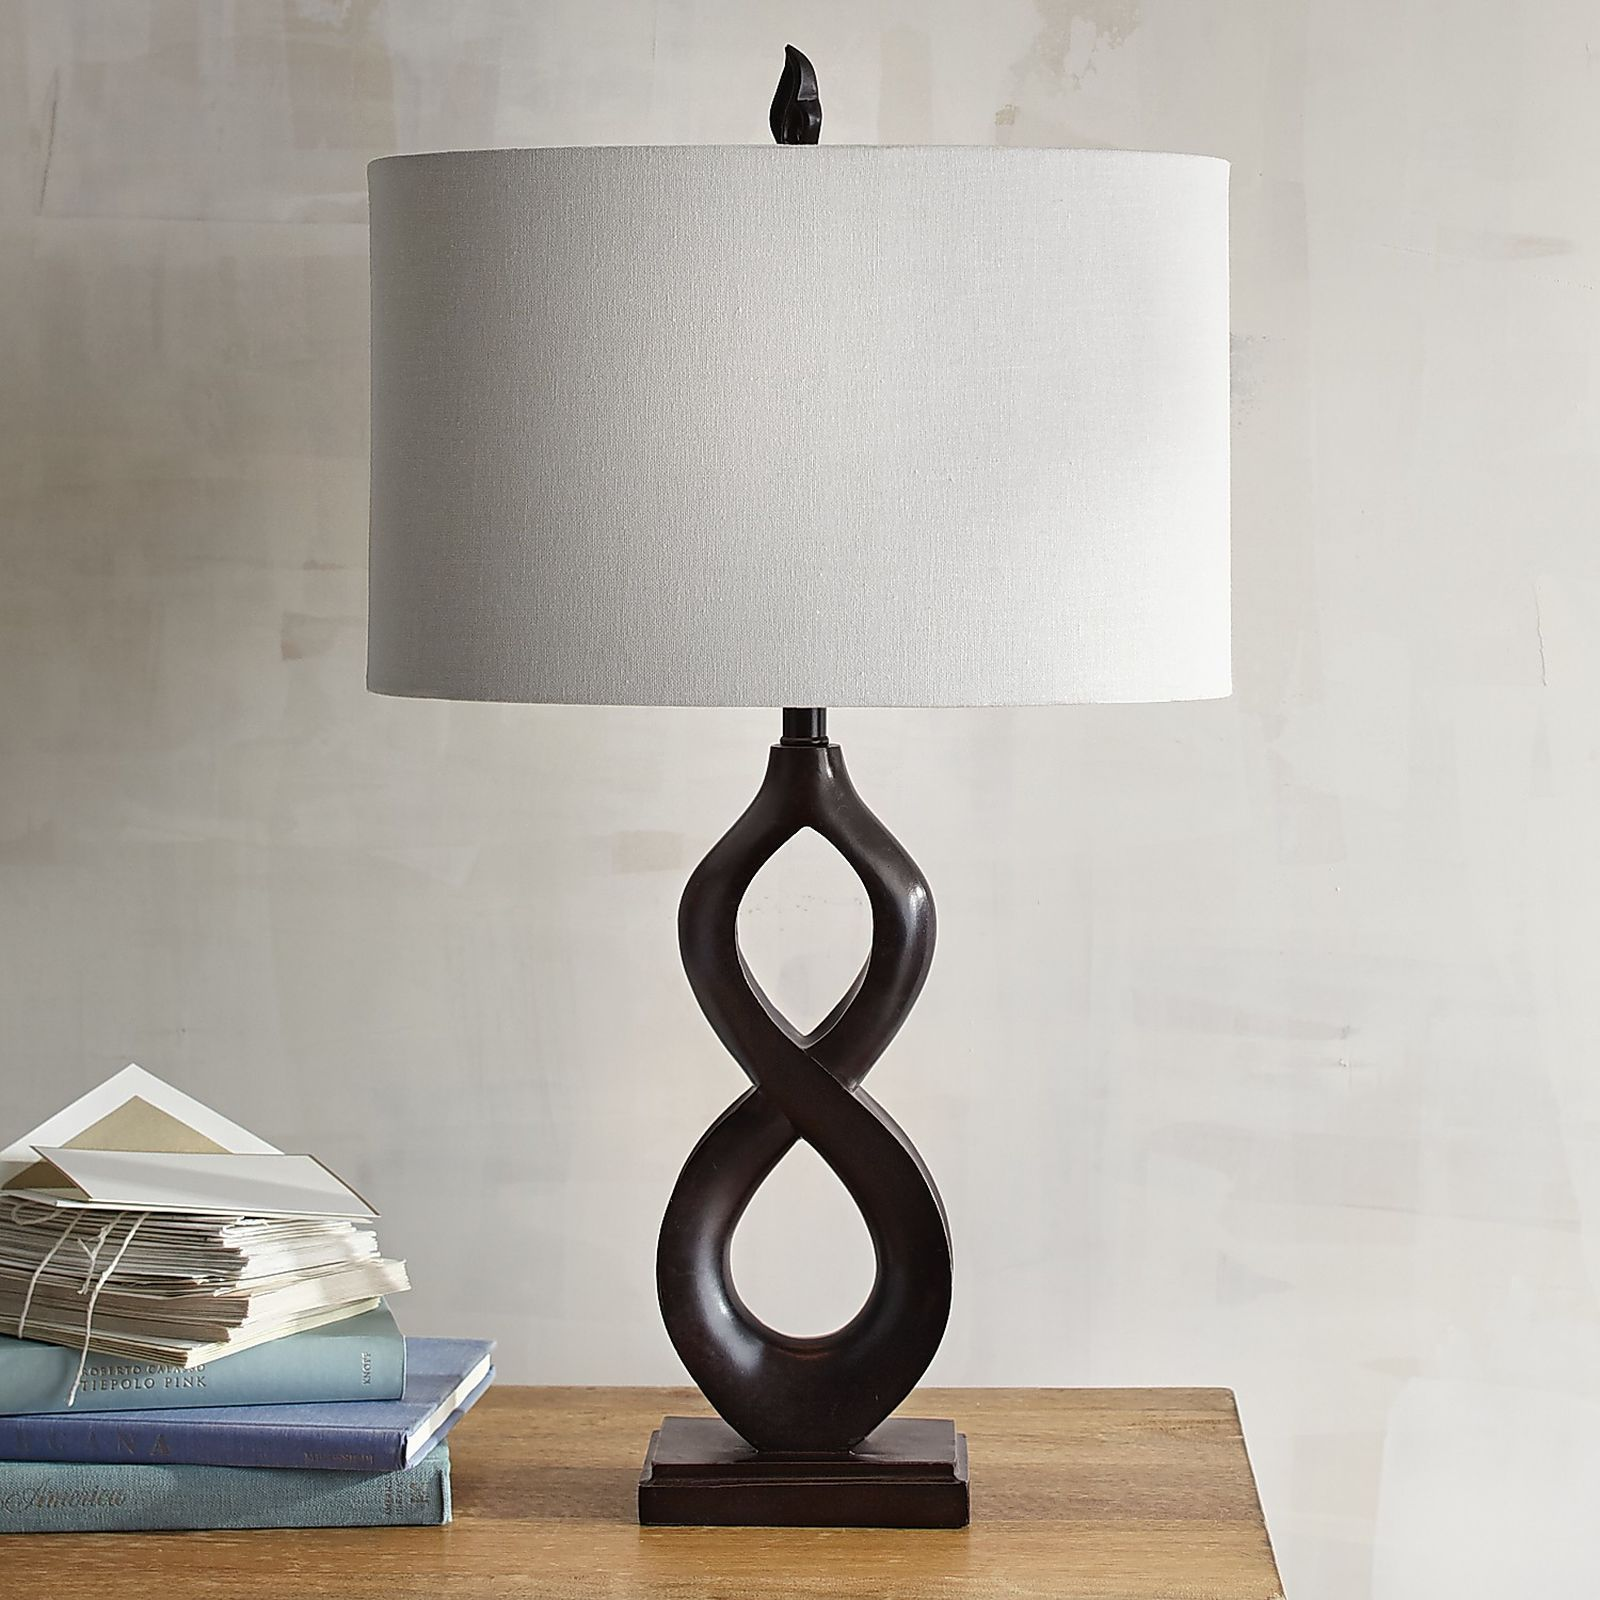 Pier One Table Lamps Infinity Lamp At Pier 1  Mizzou Office  Pinterest  Infinity Table